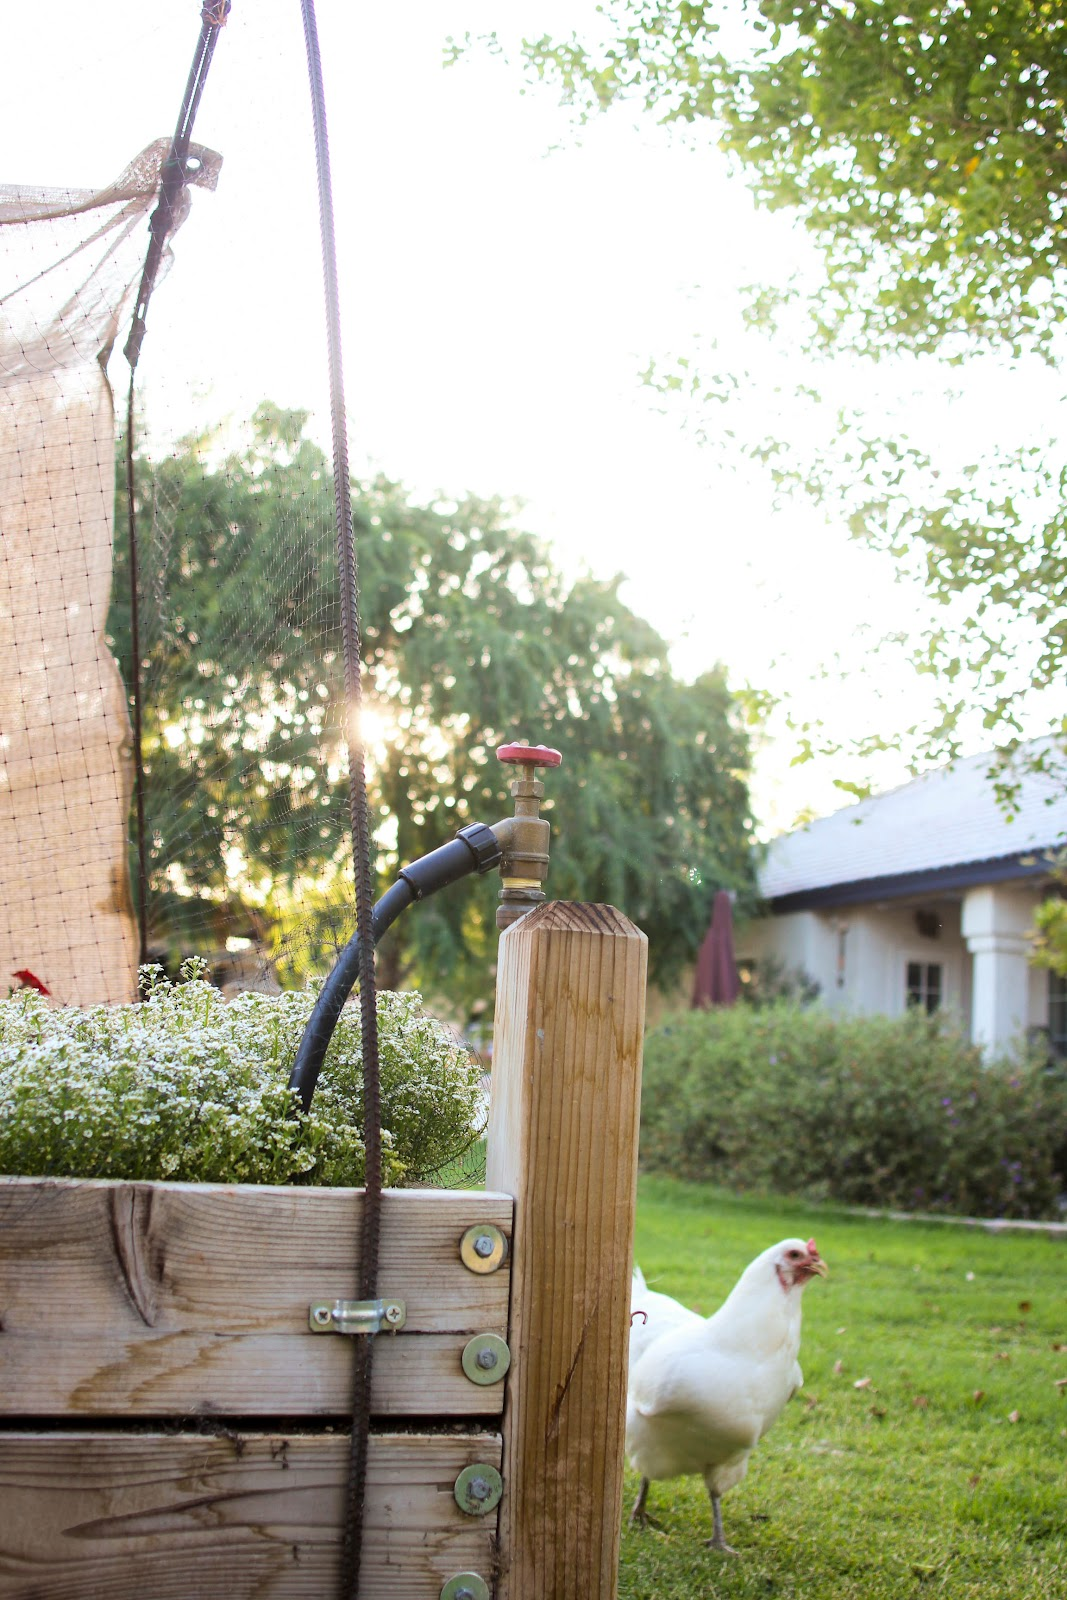 Finley and Oliver: Our Raised Beds